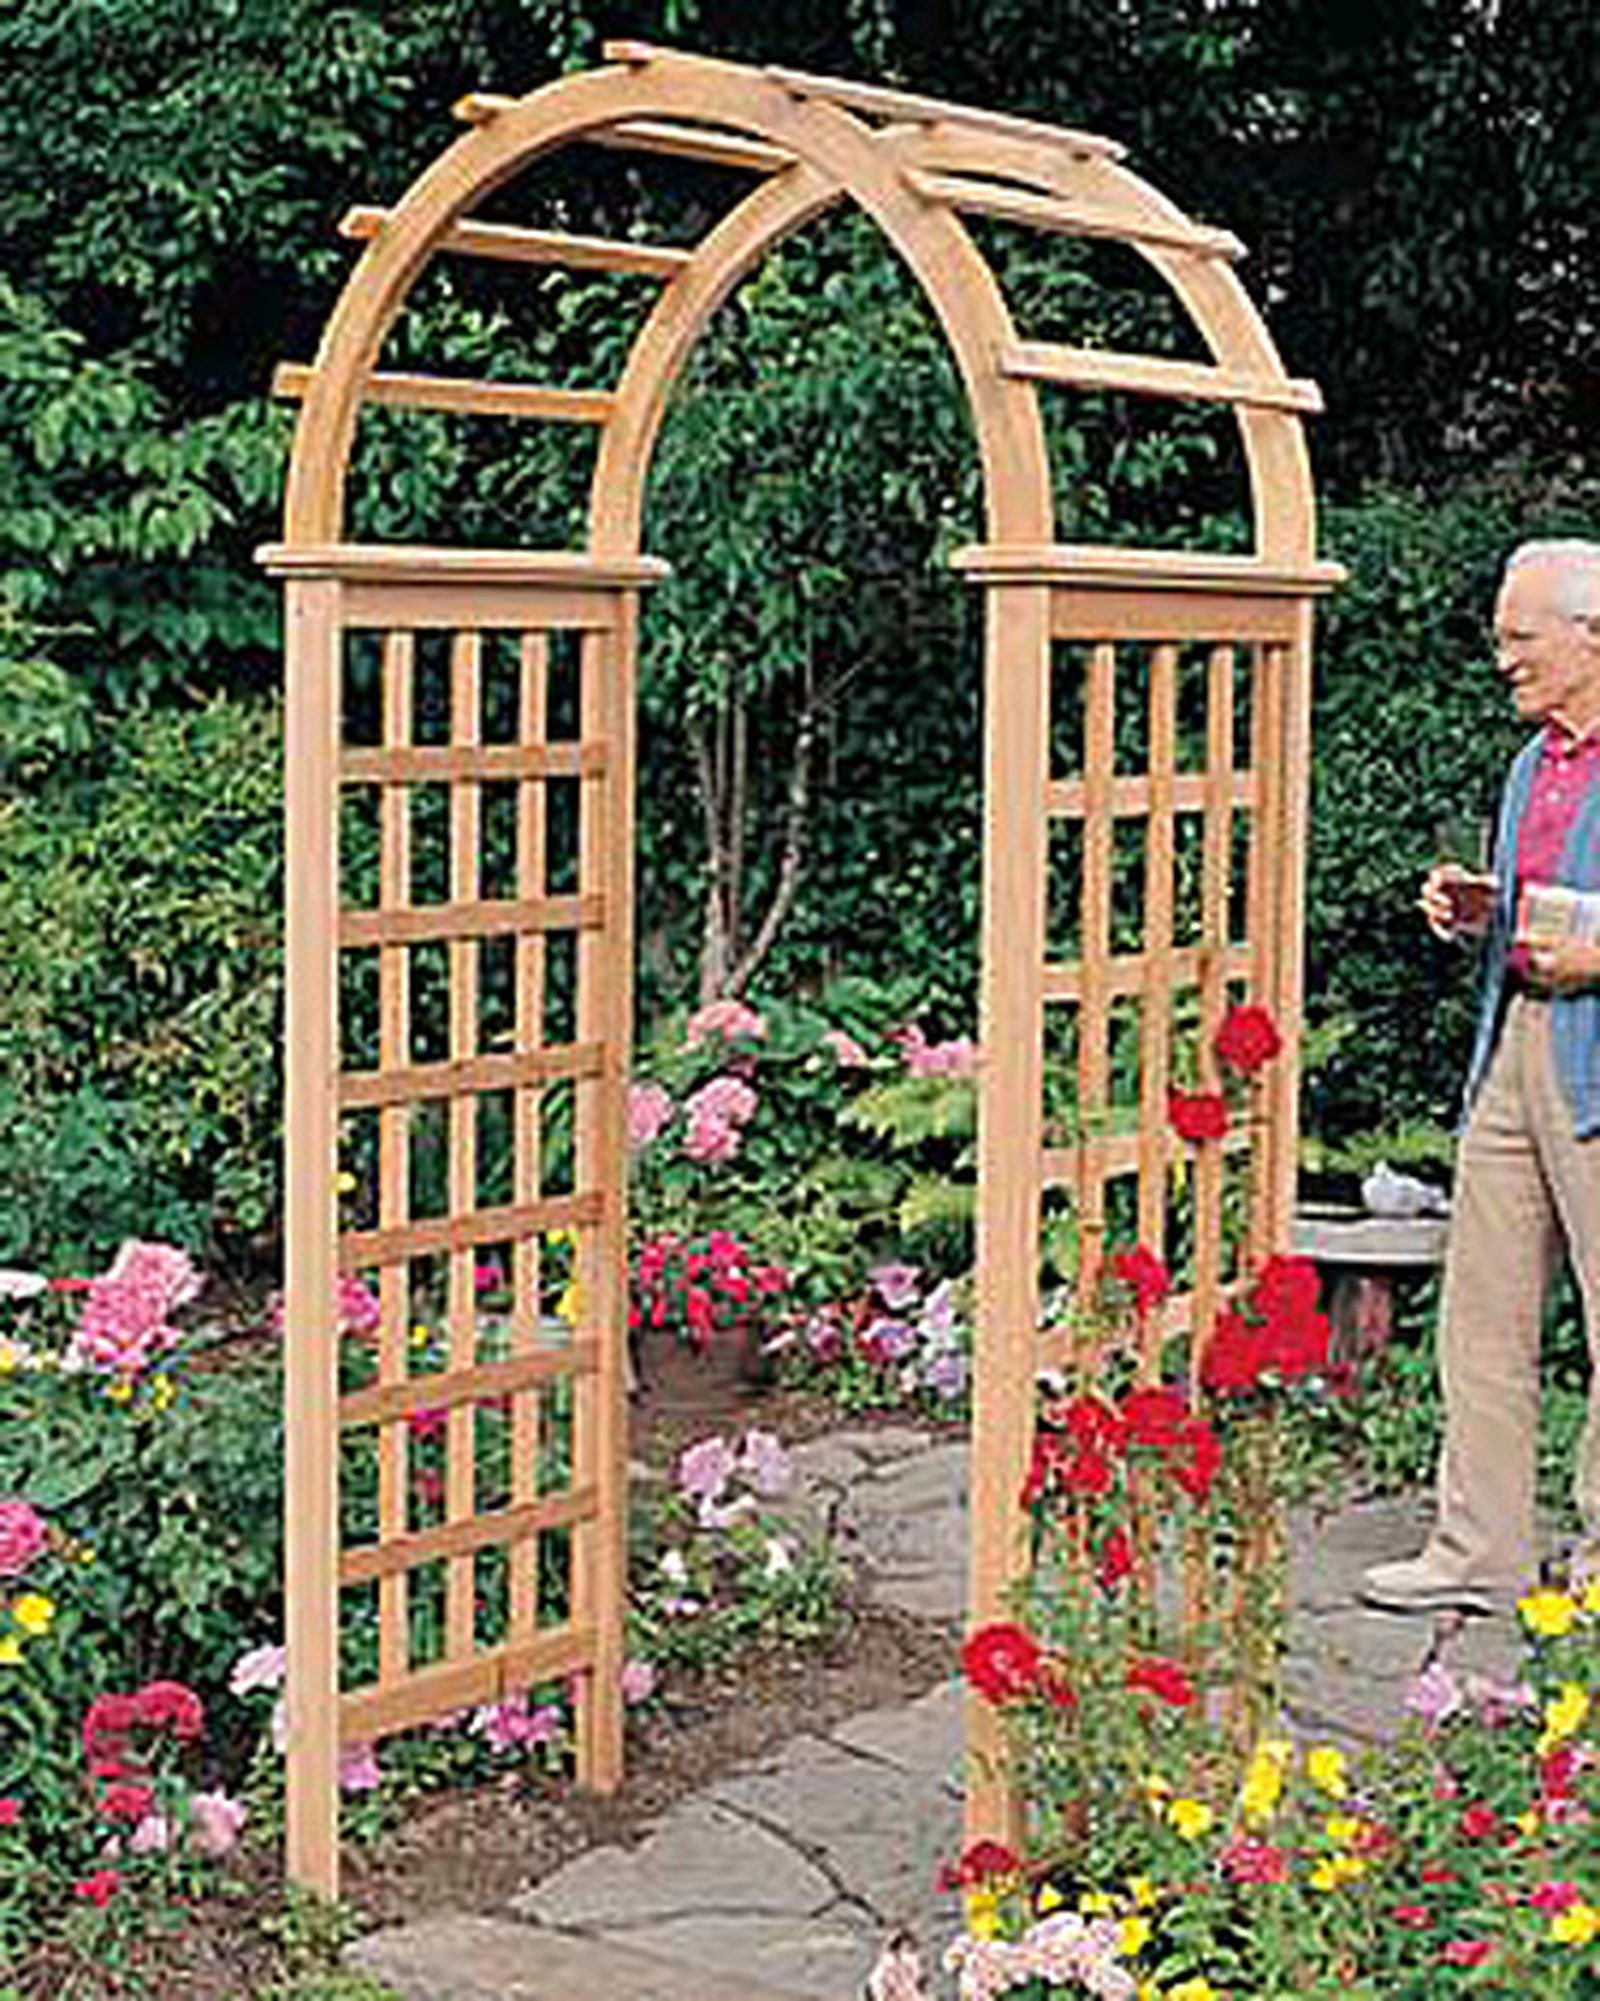 Arboria Victoria Garden Arbor Cedar Wood 7 Ft High  High With Arch Design by Arboria